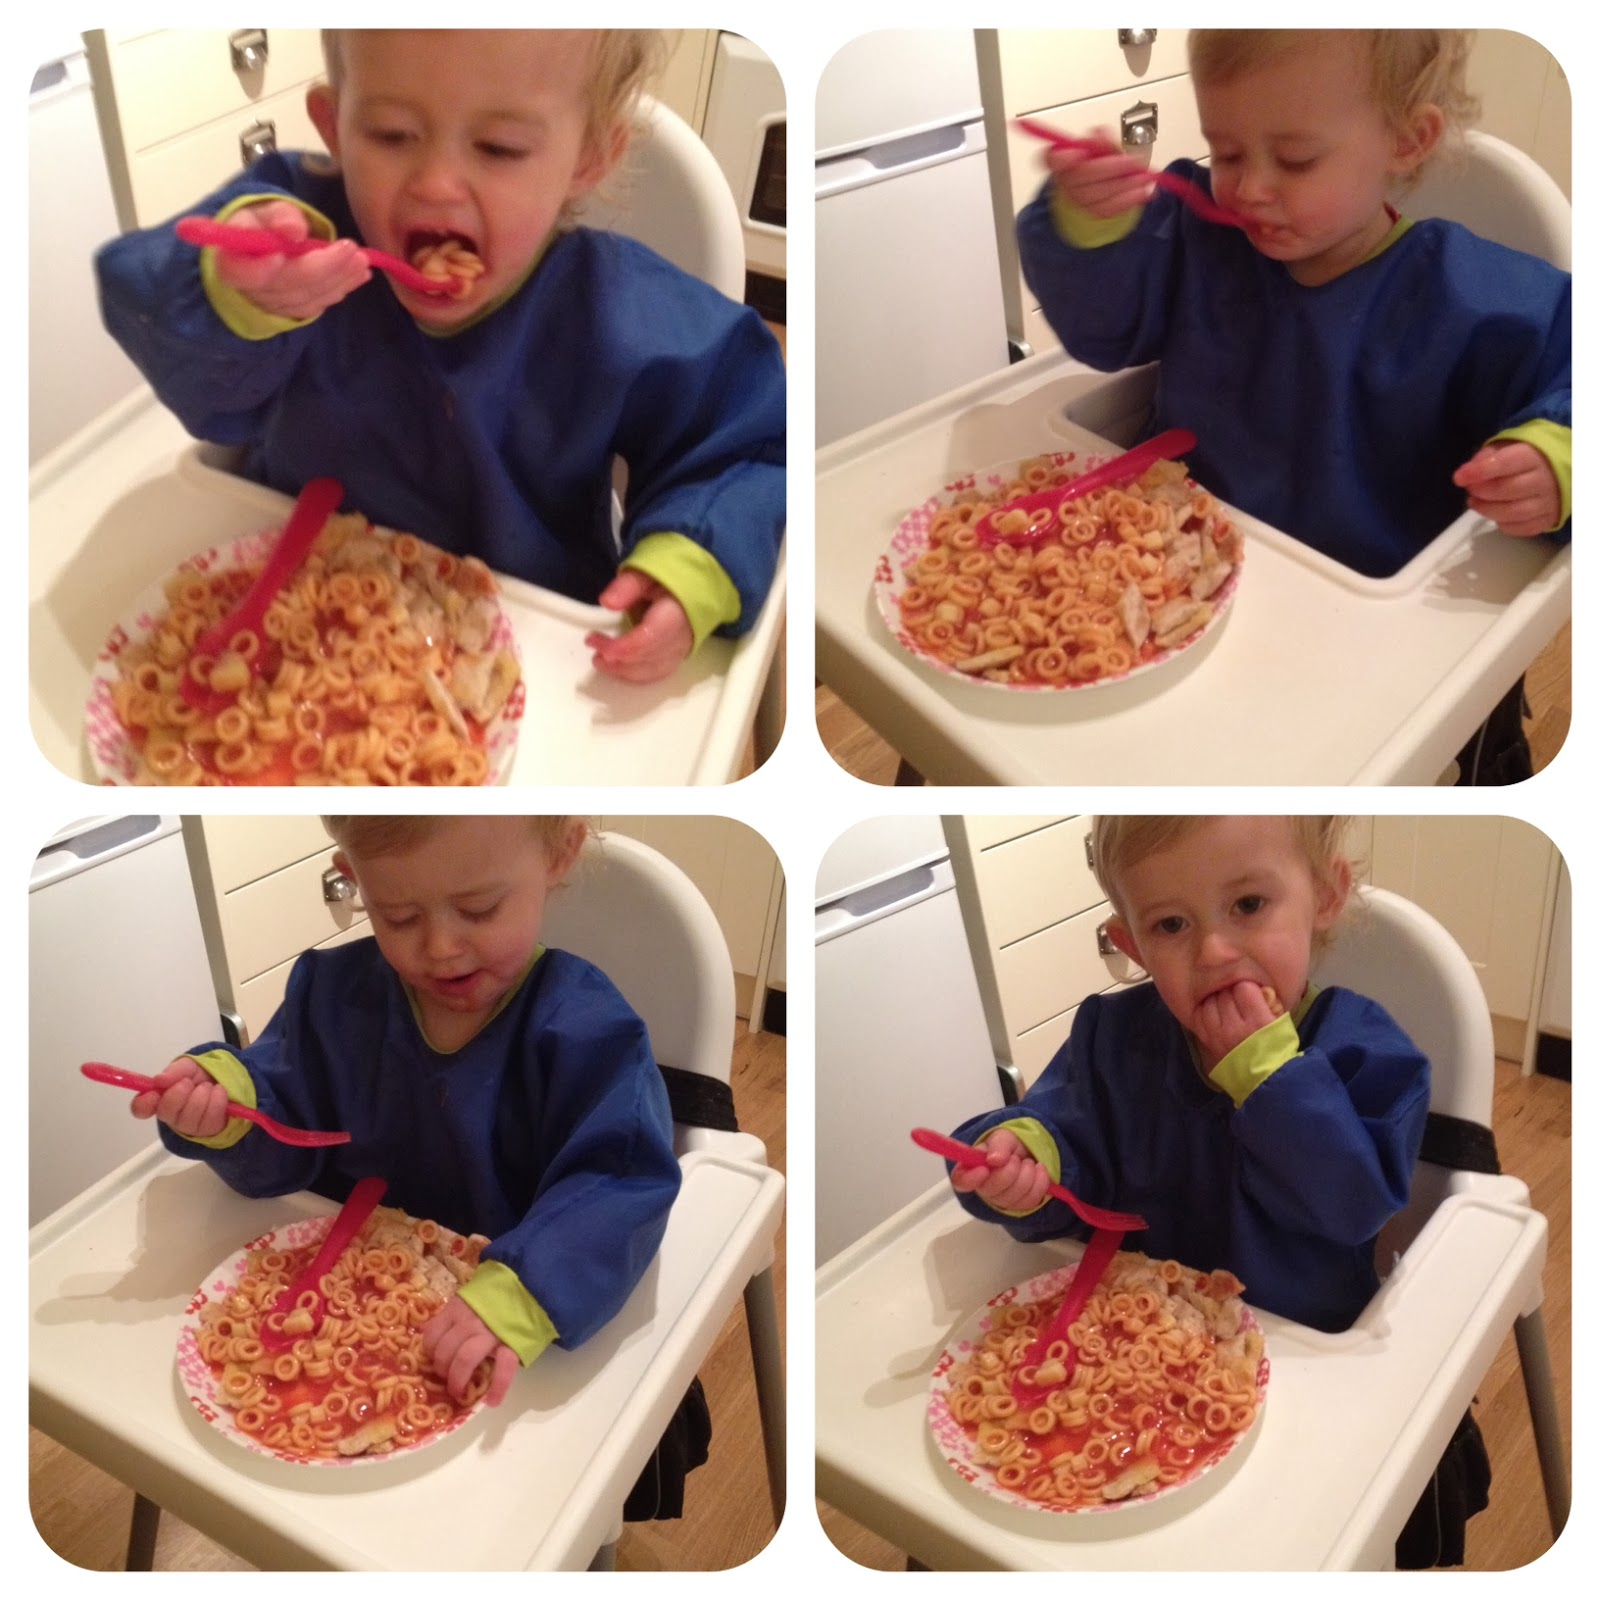 V. I. BUYS  10 great baby buys you can only find in IKEA under £60   ikea   baby buys for under £60   essential items for kids from Ikea   cheap baby products   guide caring your cot   ikea hackers   feeding times   weaning   cheap baby   baby gym   nappy changing storage   the highchair every mum has   ikea baby buys every mum and baby need